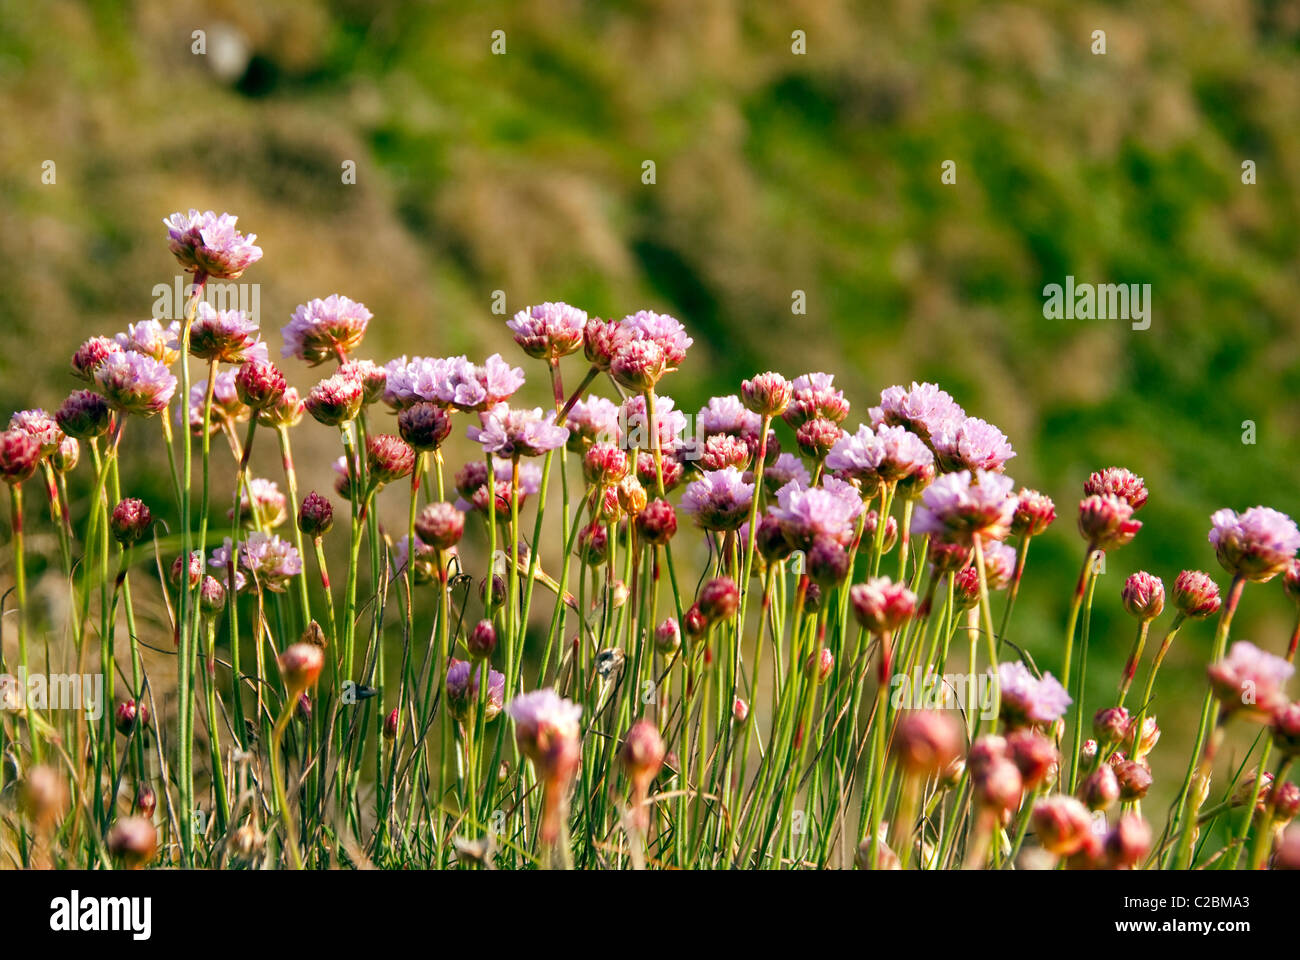 Armeria Maritima - Sea Pink or Thrift - Closeup on a bunch of wild pink flowers on blurred background during sunset - Stock Image